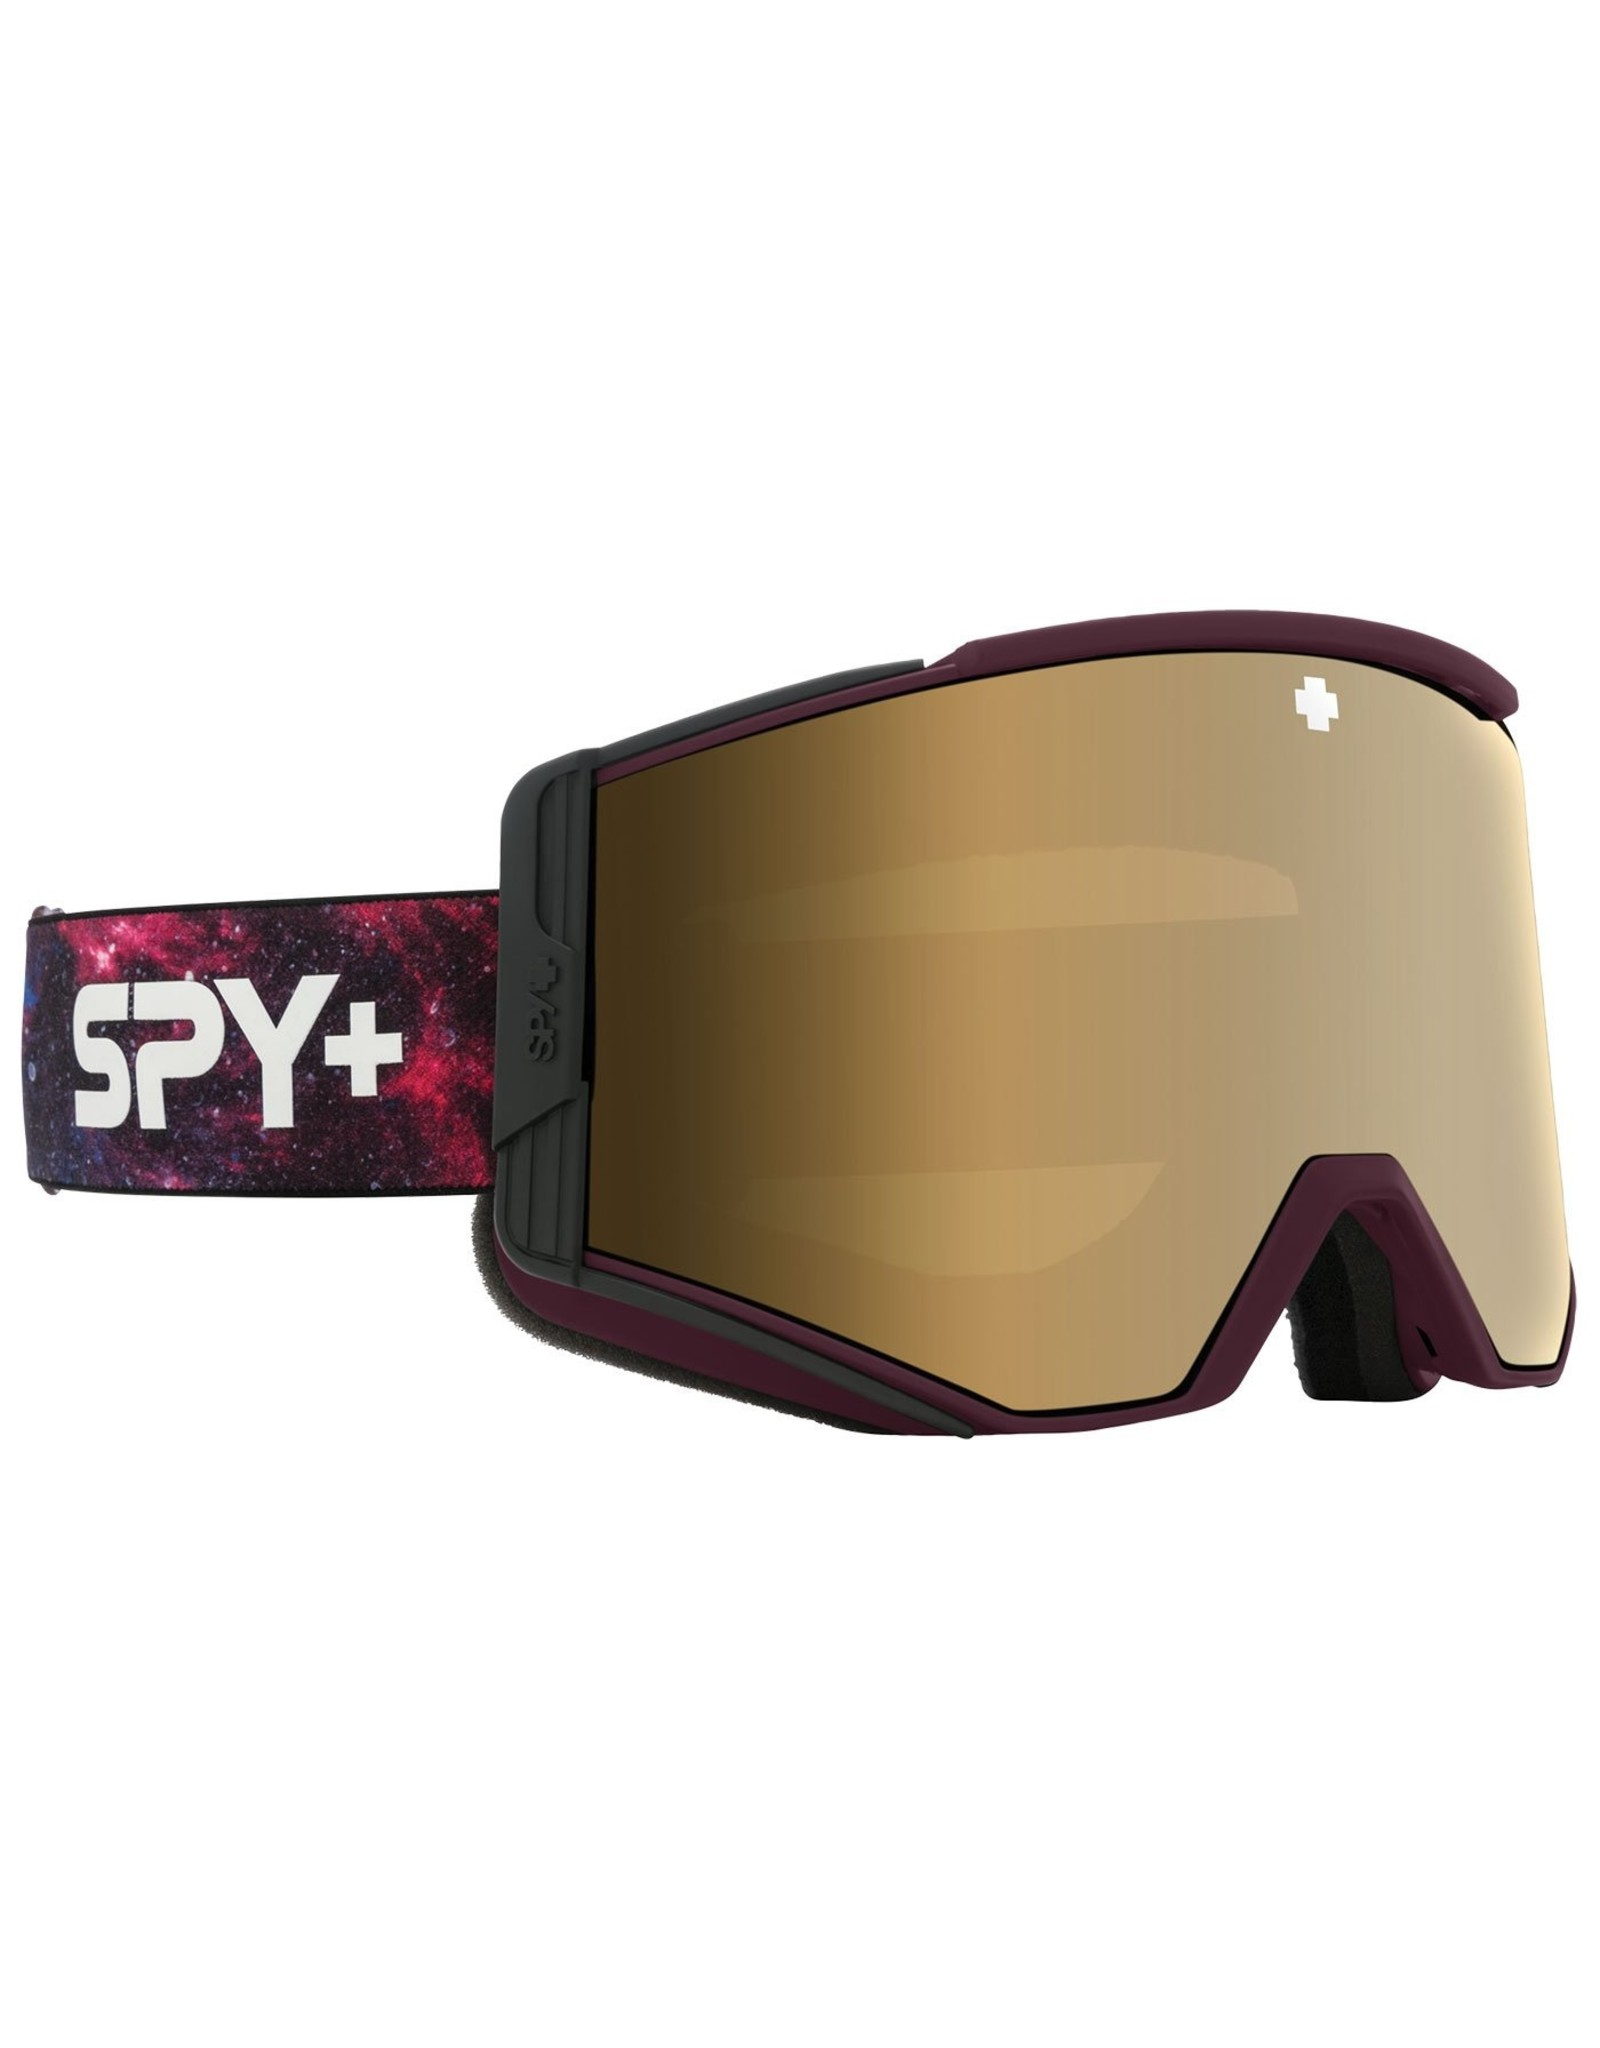 Spy Spy ACE Galaxy Purple - HD Plus Bronze with Gold Spectra Mirror - HD Plus LL Persimmon with Silver Spectra Mirror